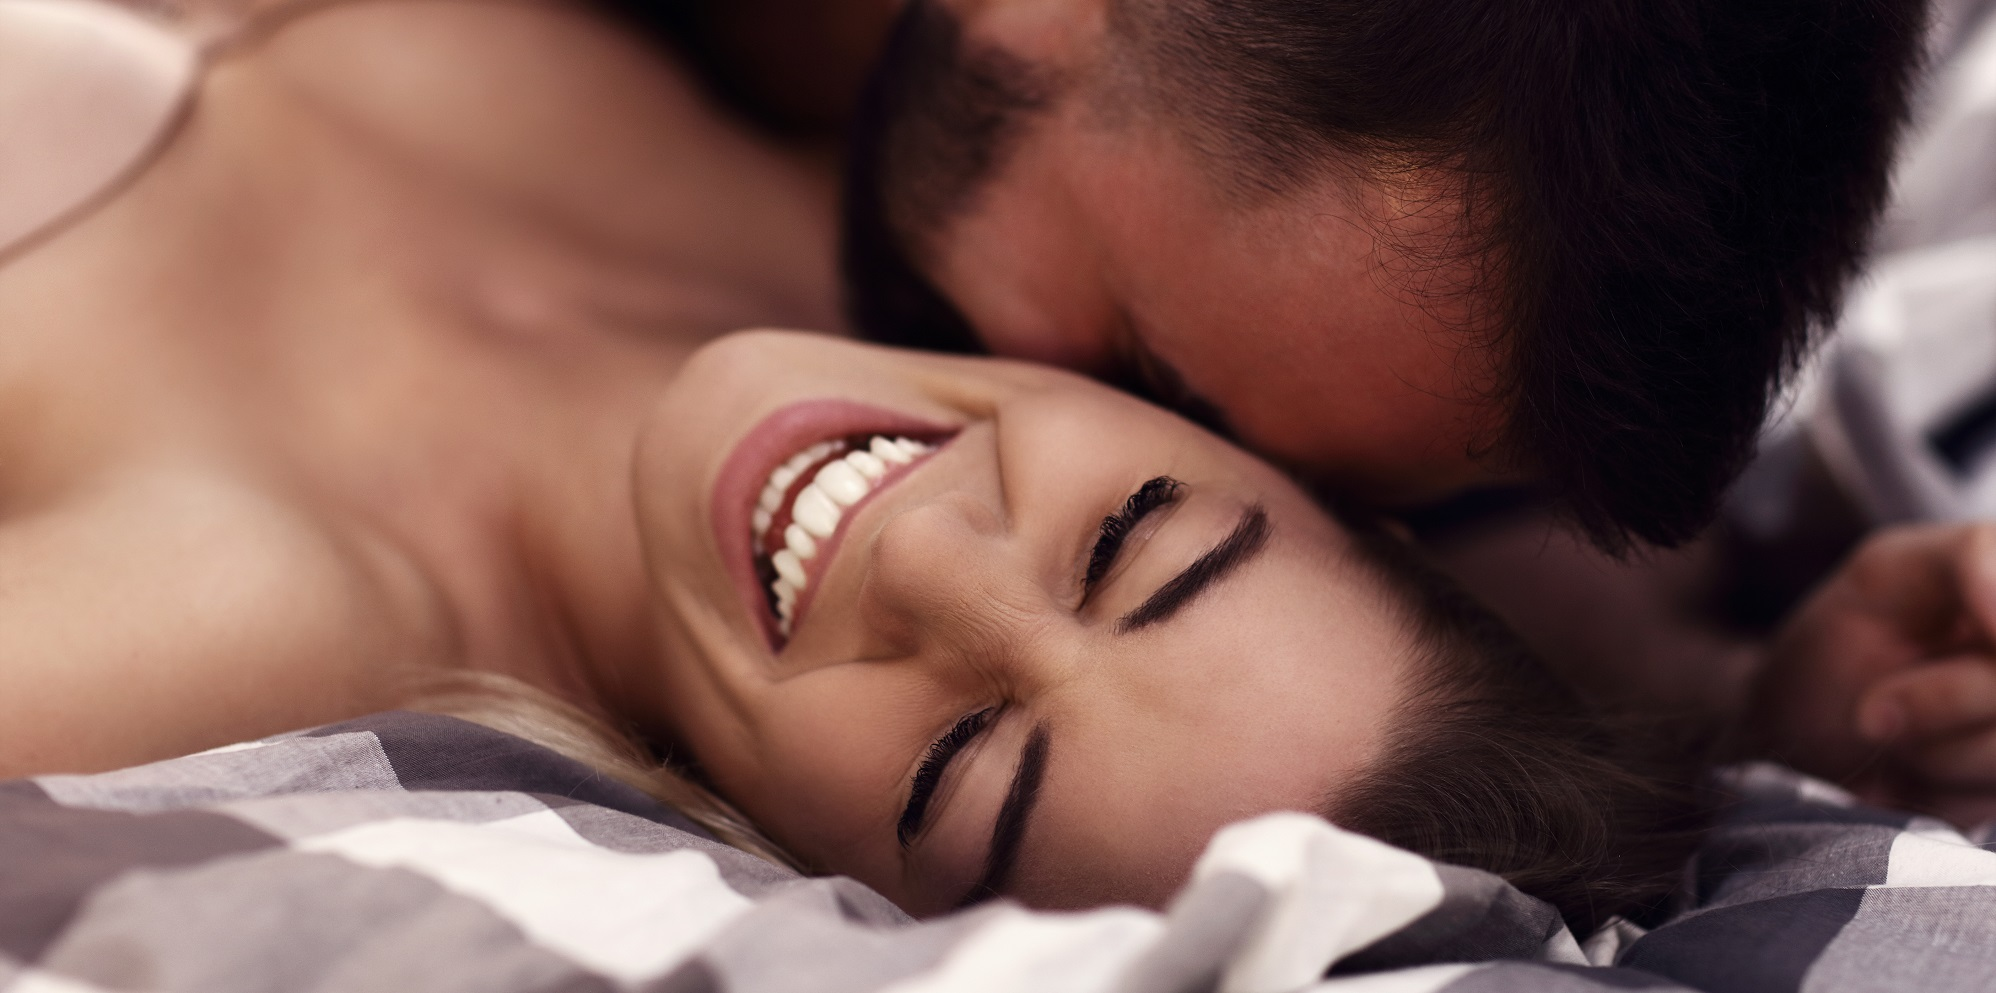 tips for first time sexual intercourse